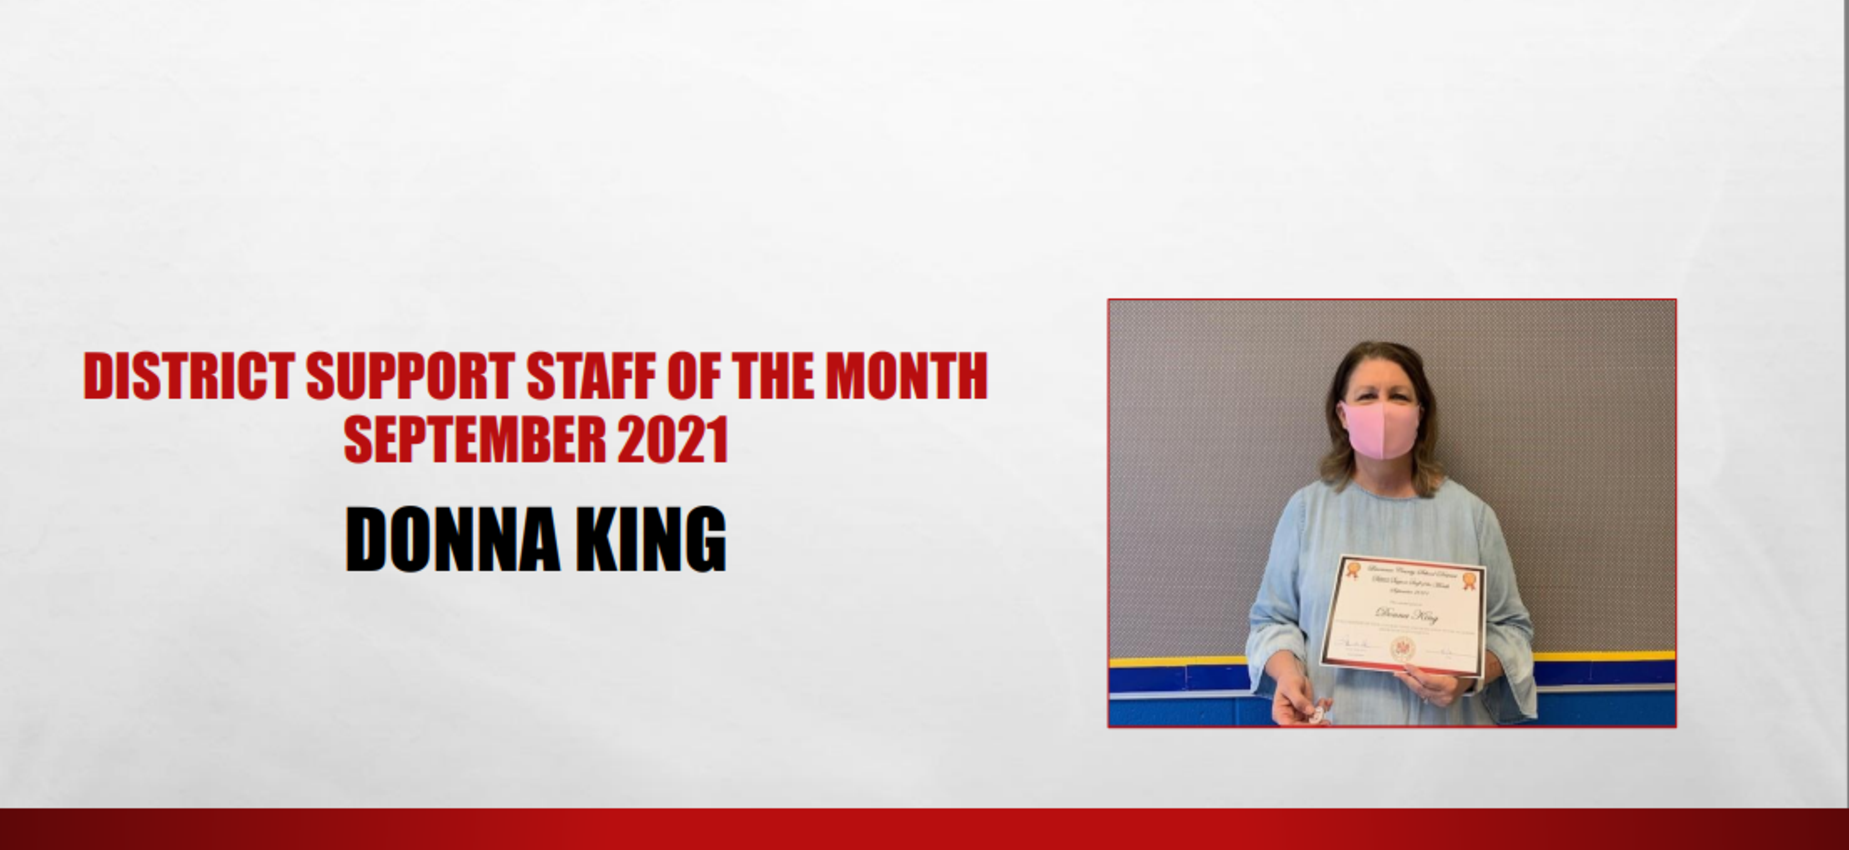 September 2021 District Support Staff of the Month Donna King